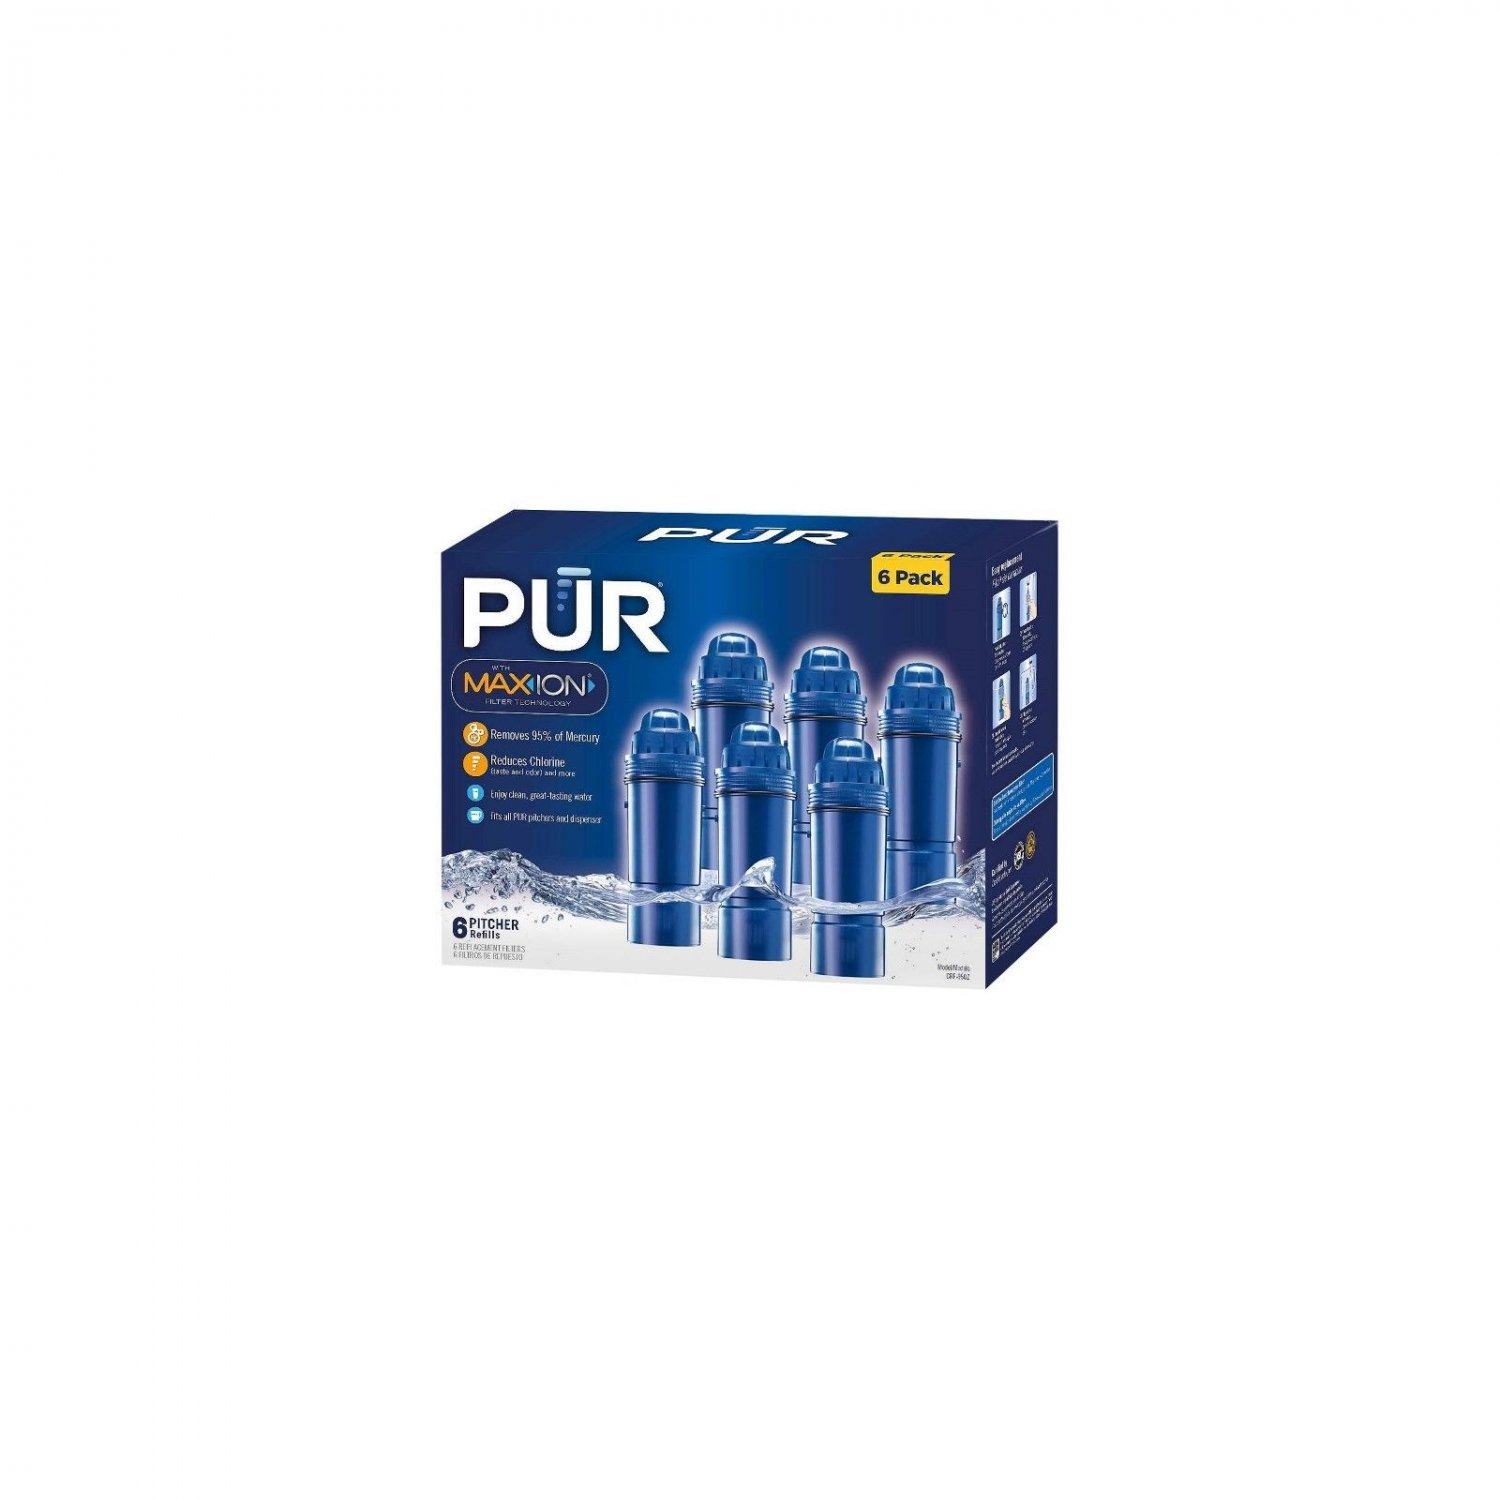 PUR Pitcher Replacement Filter, 6 Pack NEW